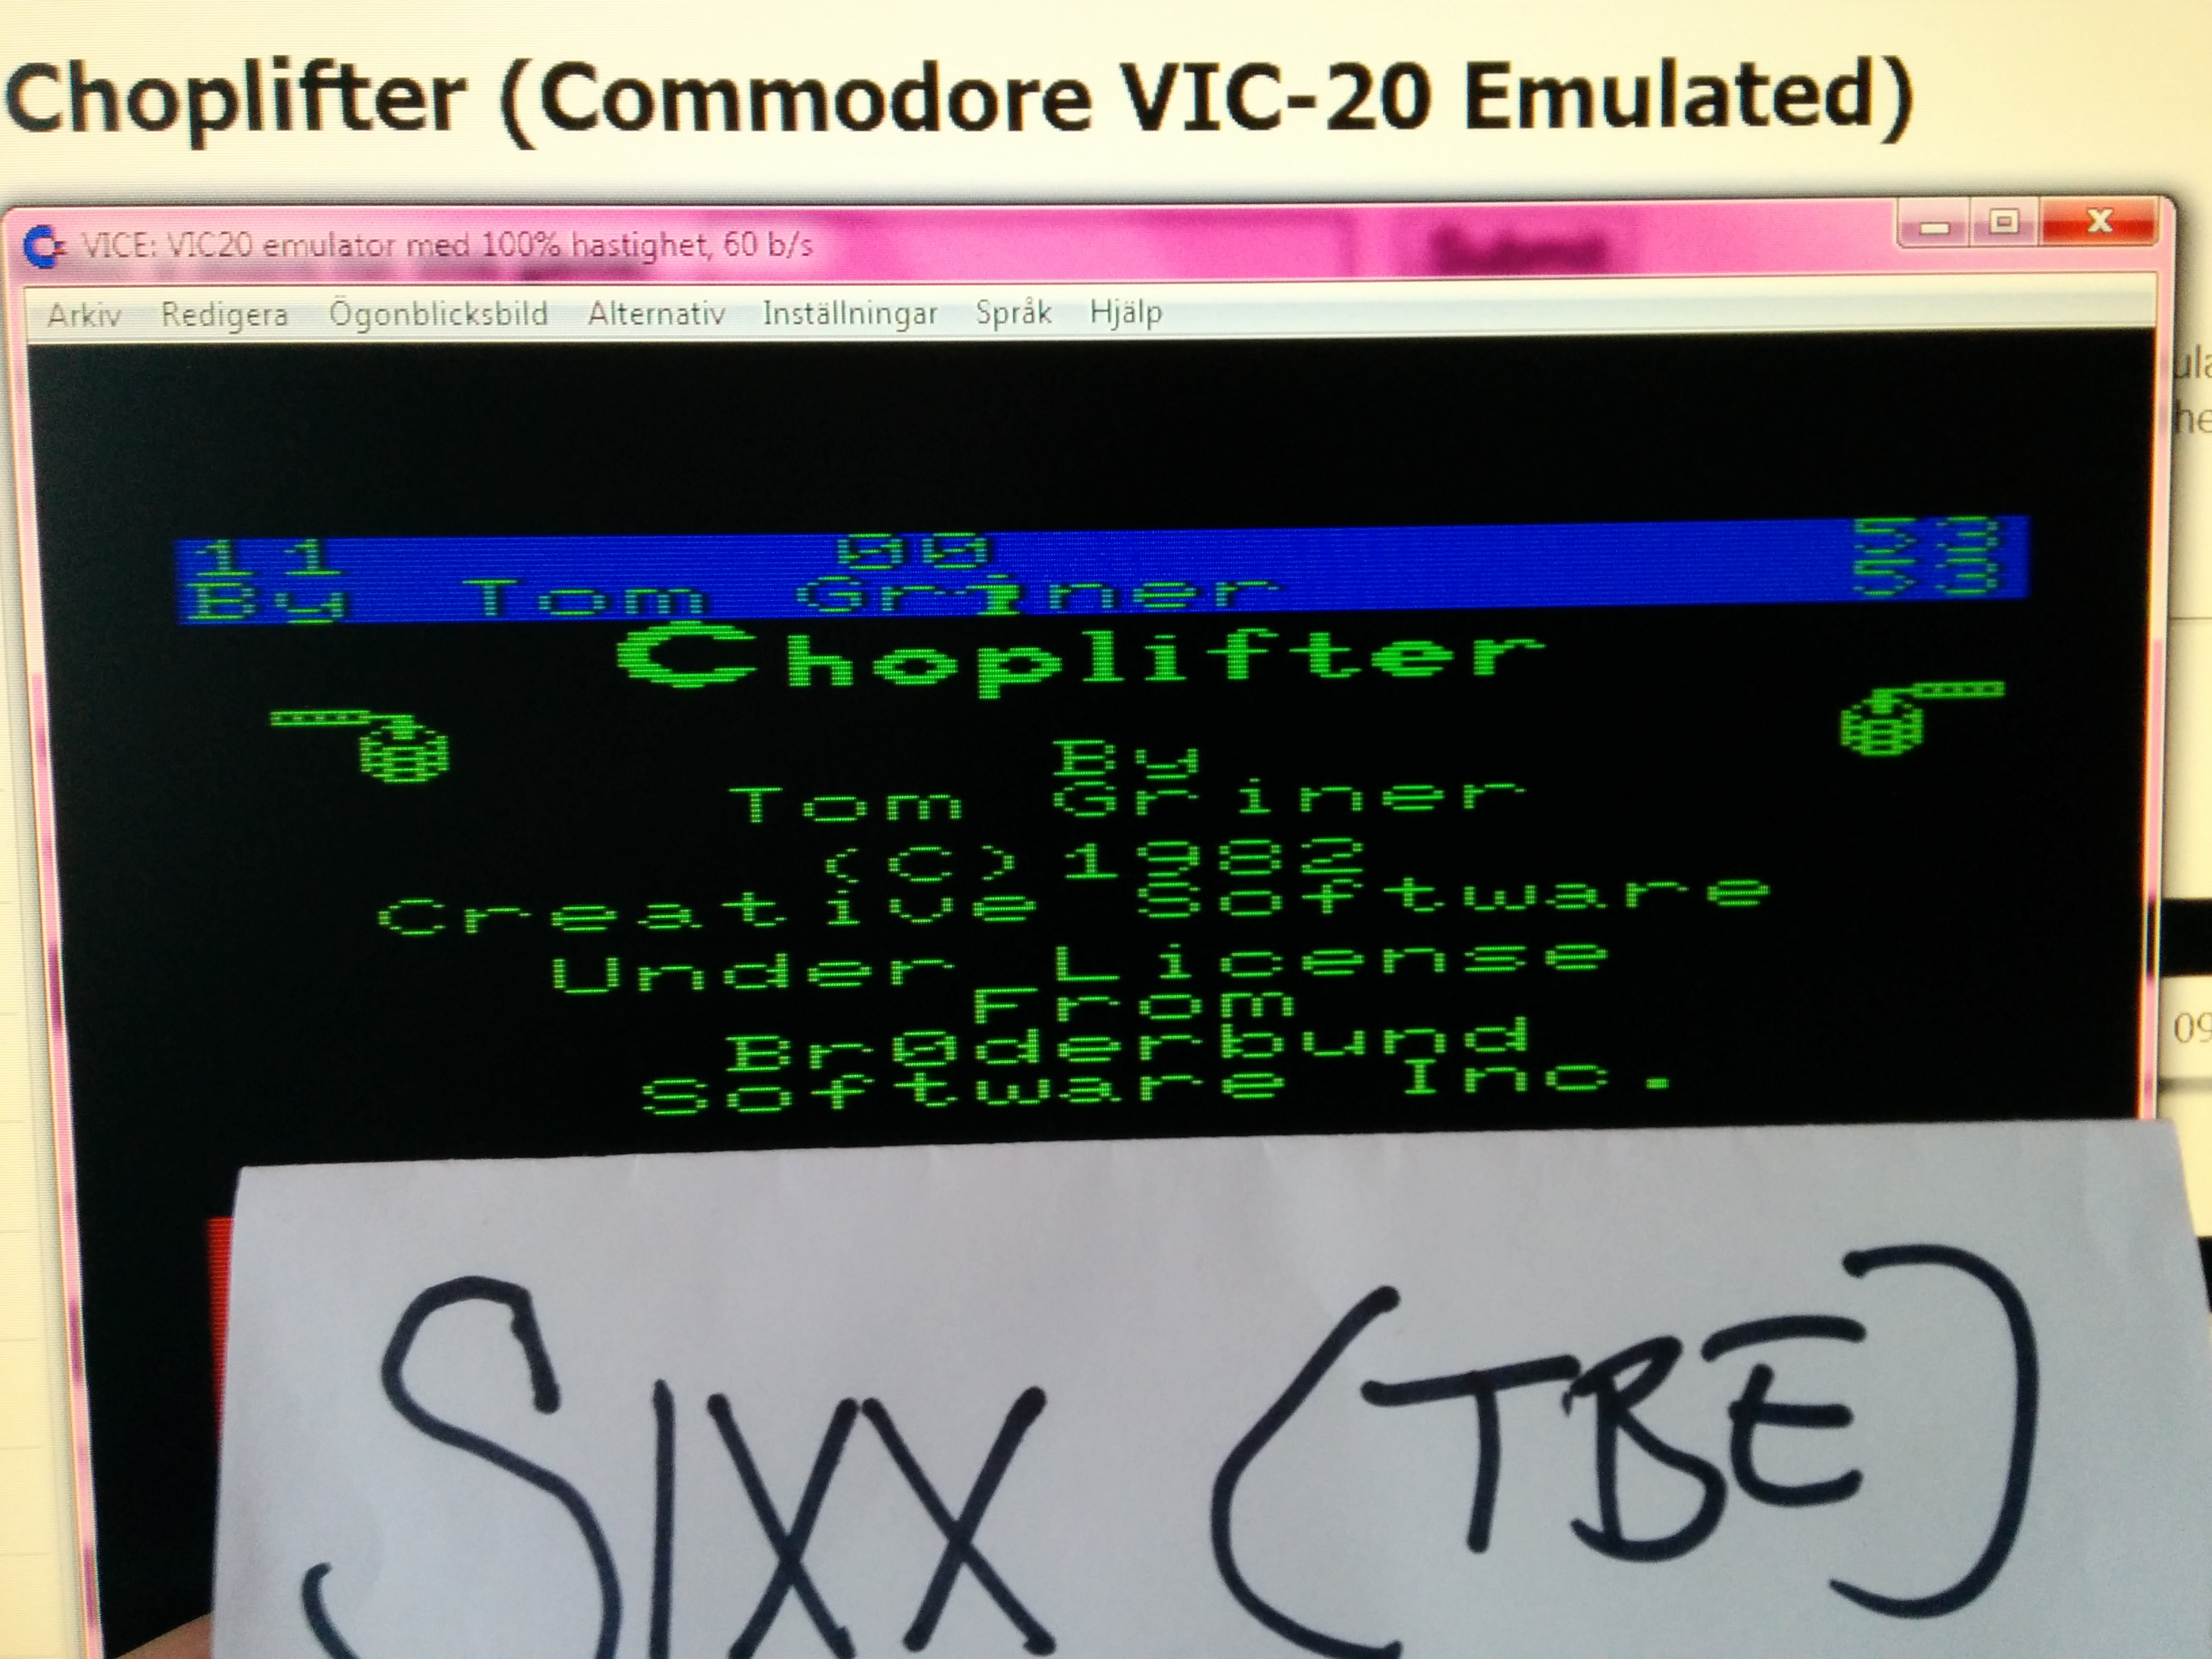 Sixx: Choplifter (Commodore VIC-20 Emulated) 53 points on 2014-04-18 12:59:37